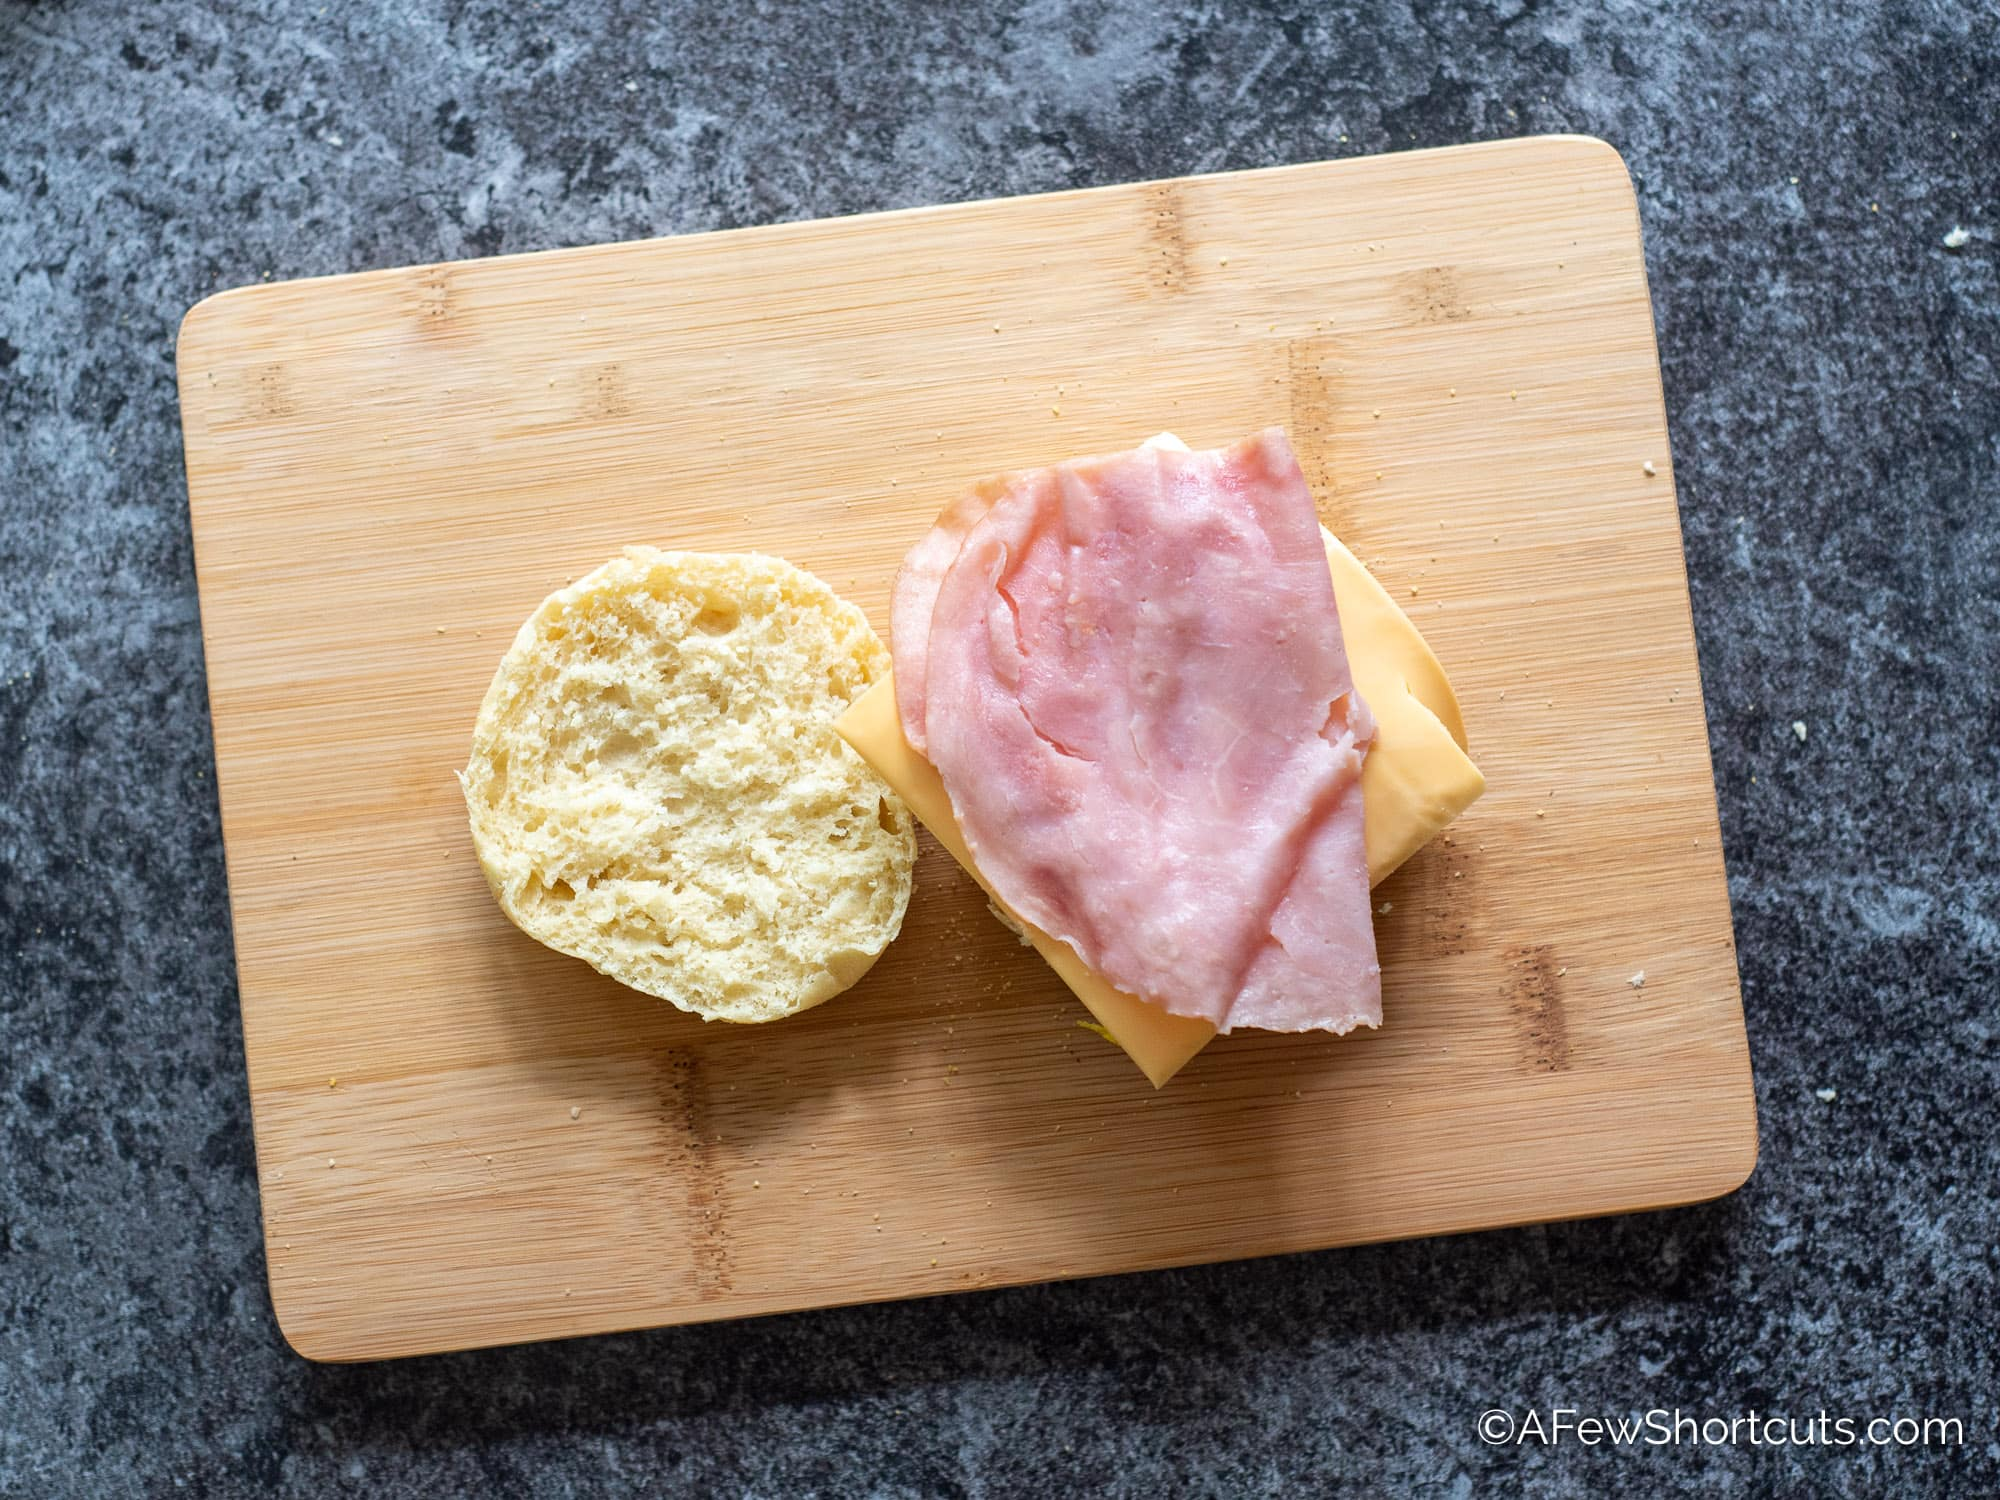 Cheese and ham on egg and English muffin